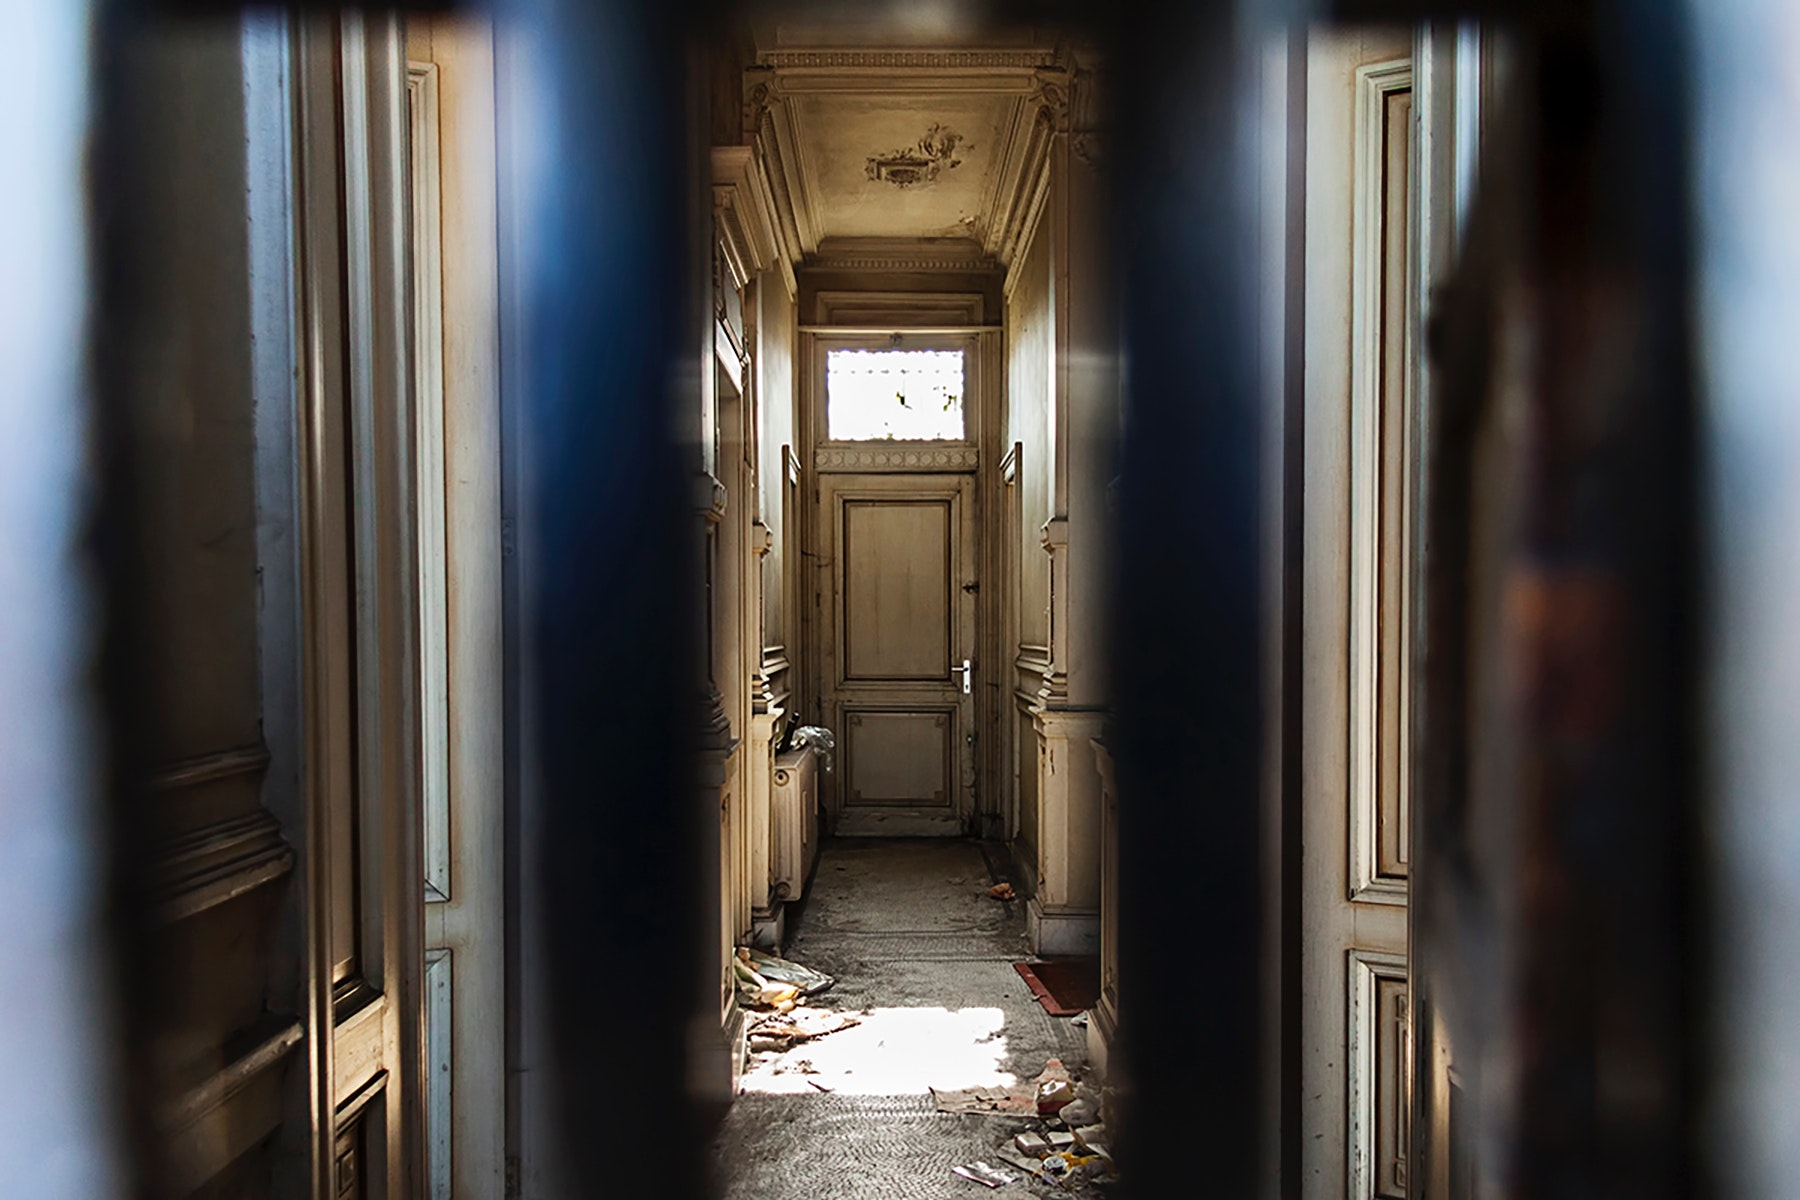 Empty Hallway, Abandoned, Architecture, Building, Daylight, HQ Photo